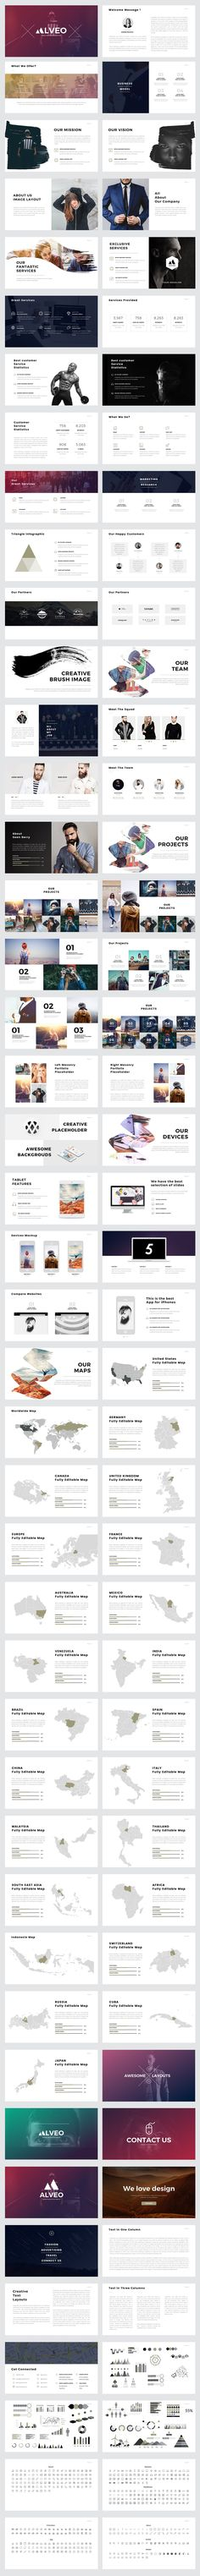 Mevo Powerpoint Presentation Template (Powerpoint Templates - presentation skills ppt